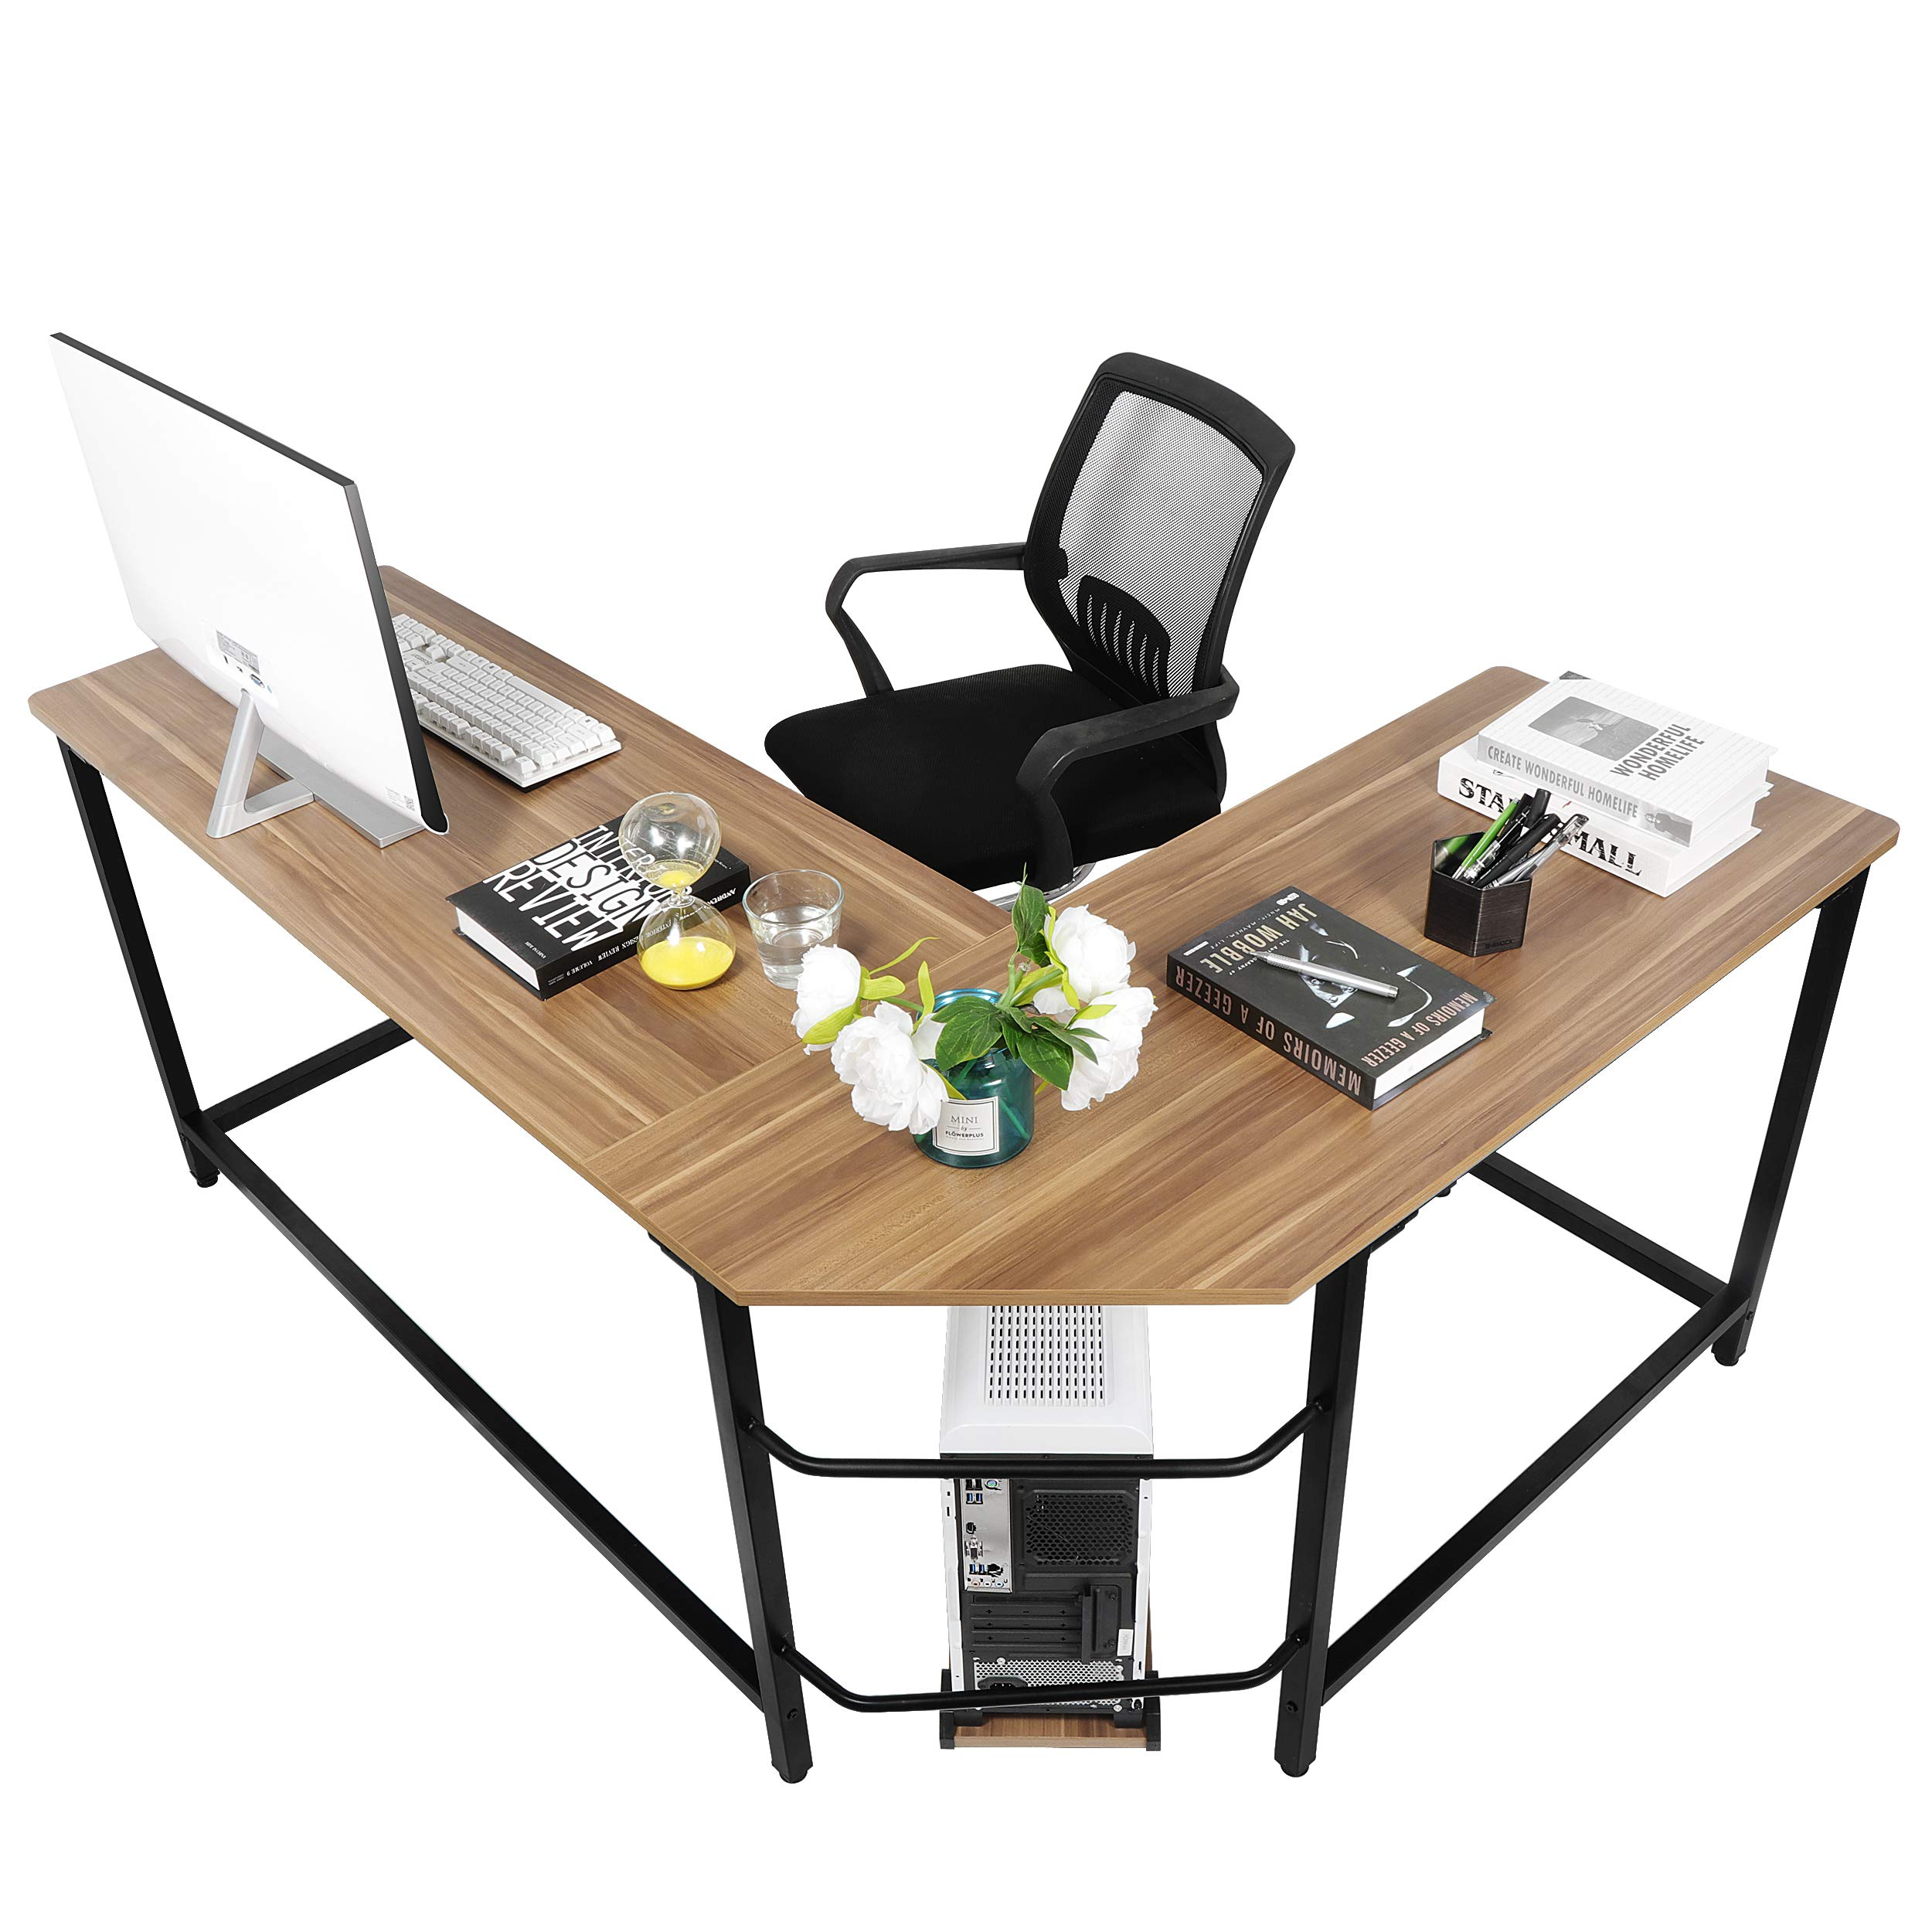 SUPER DEAL Large L-Shape Corner Computer Desk PC Study Table Workstation w/ with Monitor Printer Shelf, Foot Rest Bar For Home Office, Anti Scratch Wood & Solid Metal by SUPER DEAL